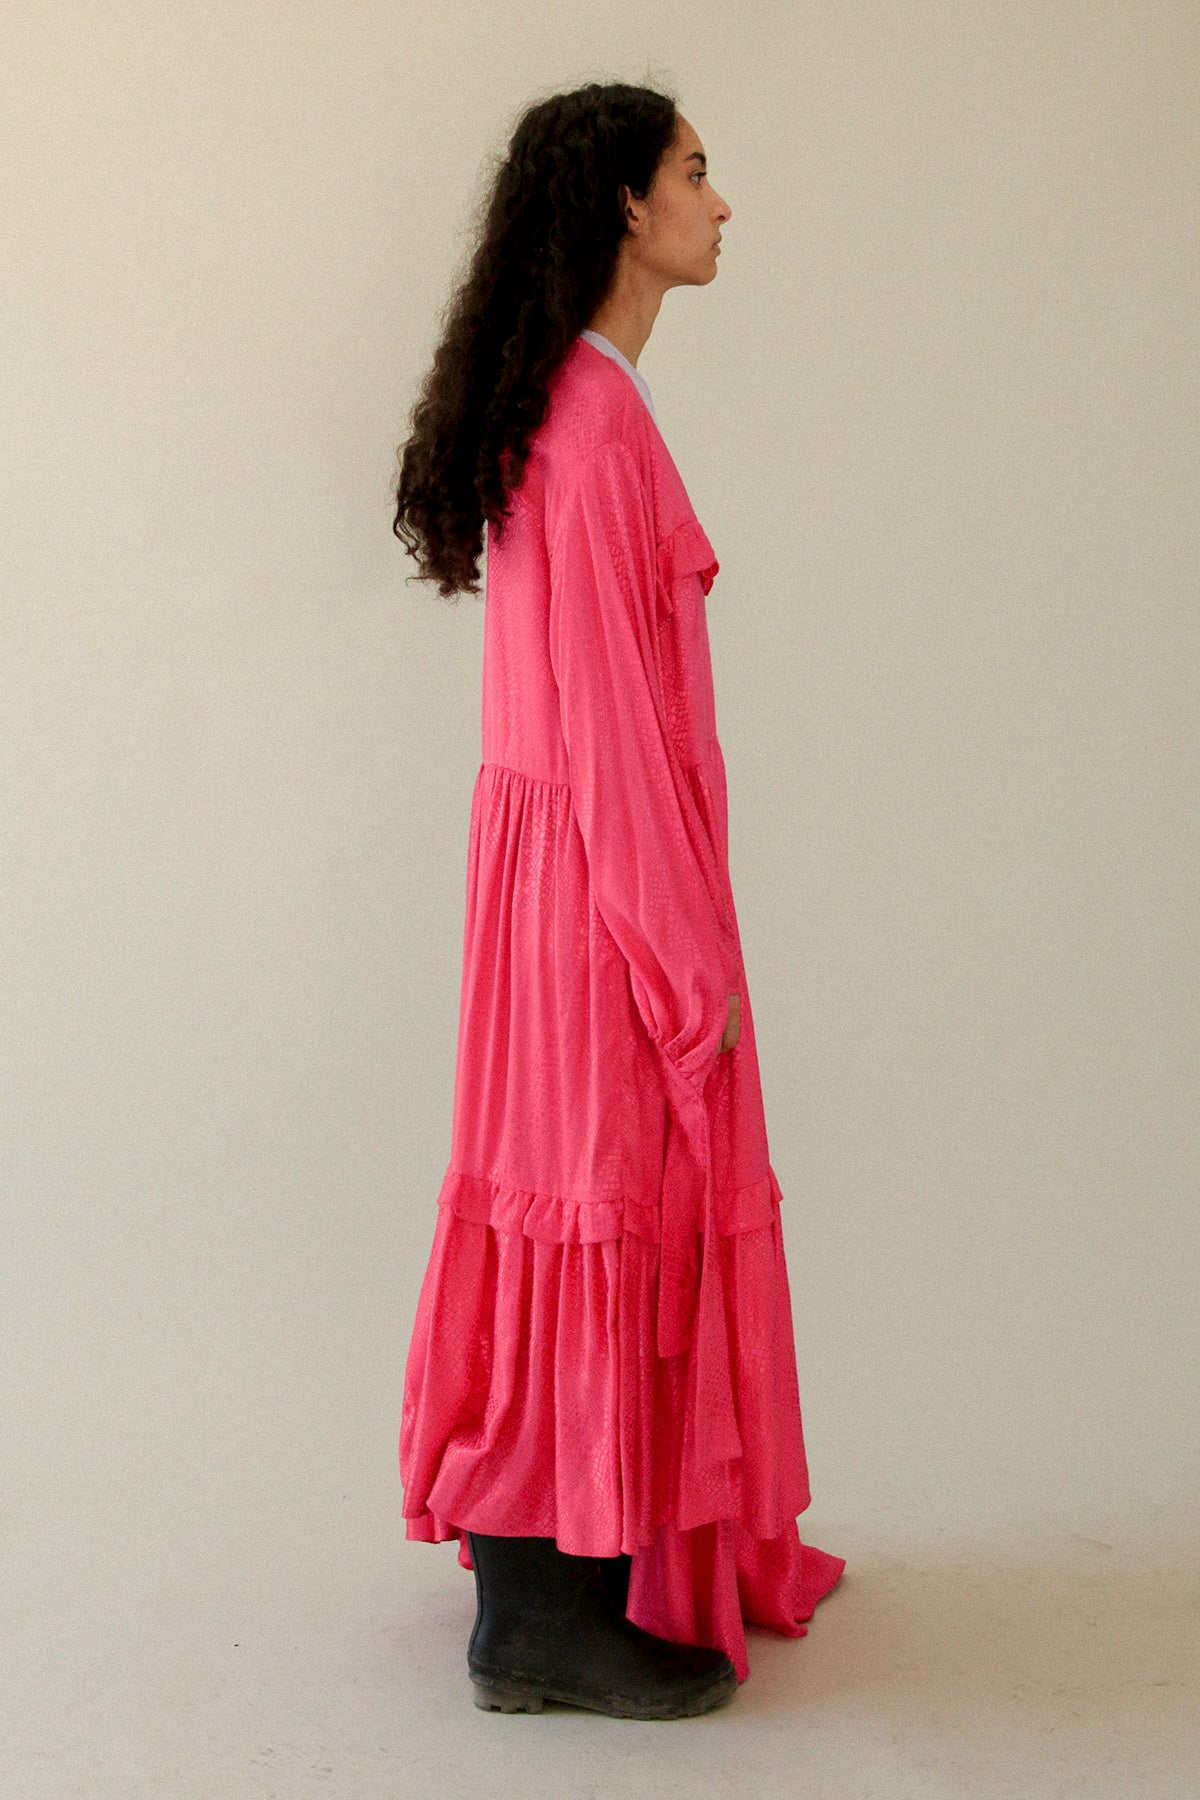 Nine Twenty-Eight Dress in Fuchsia